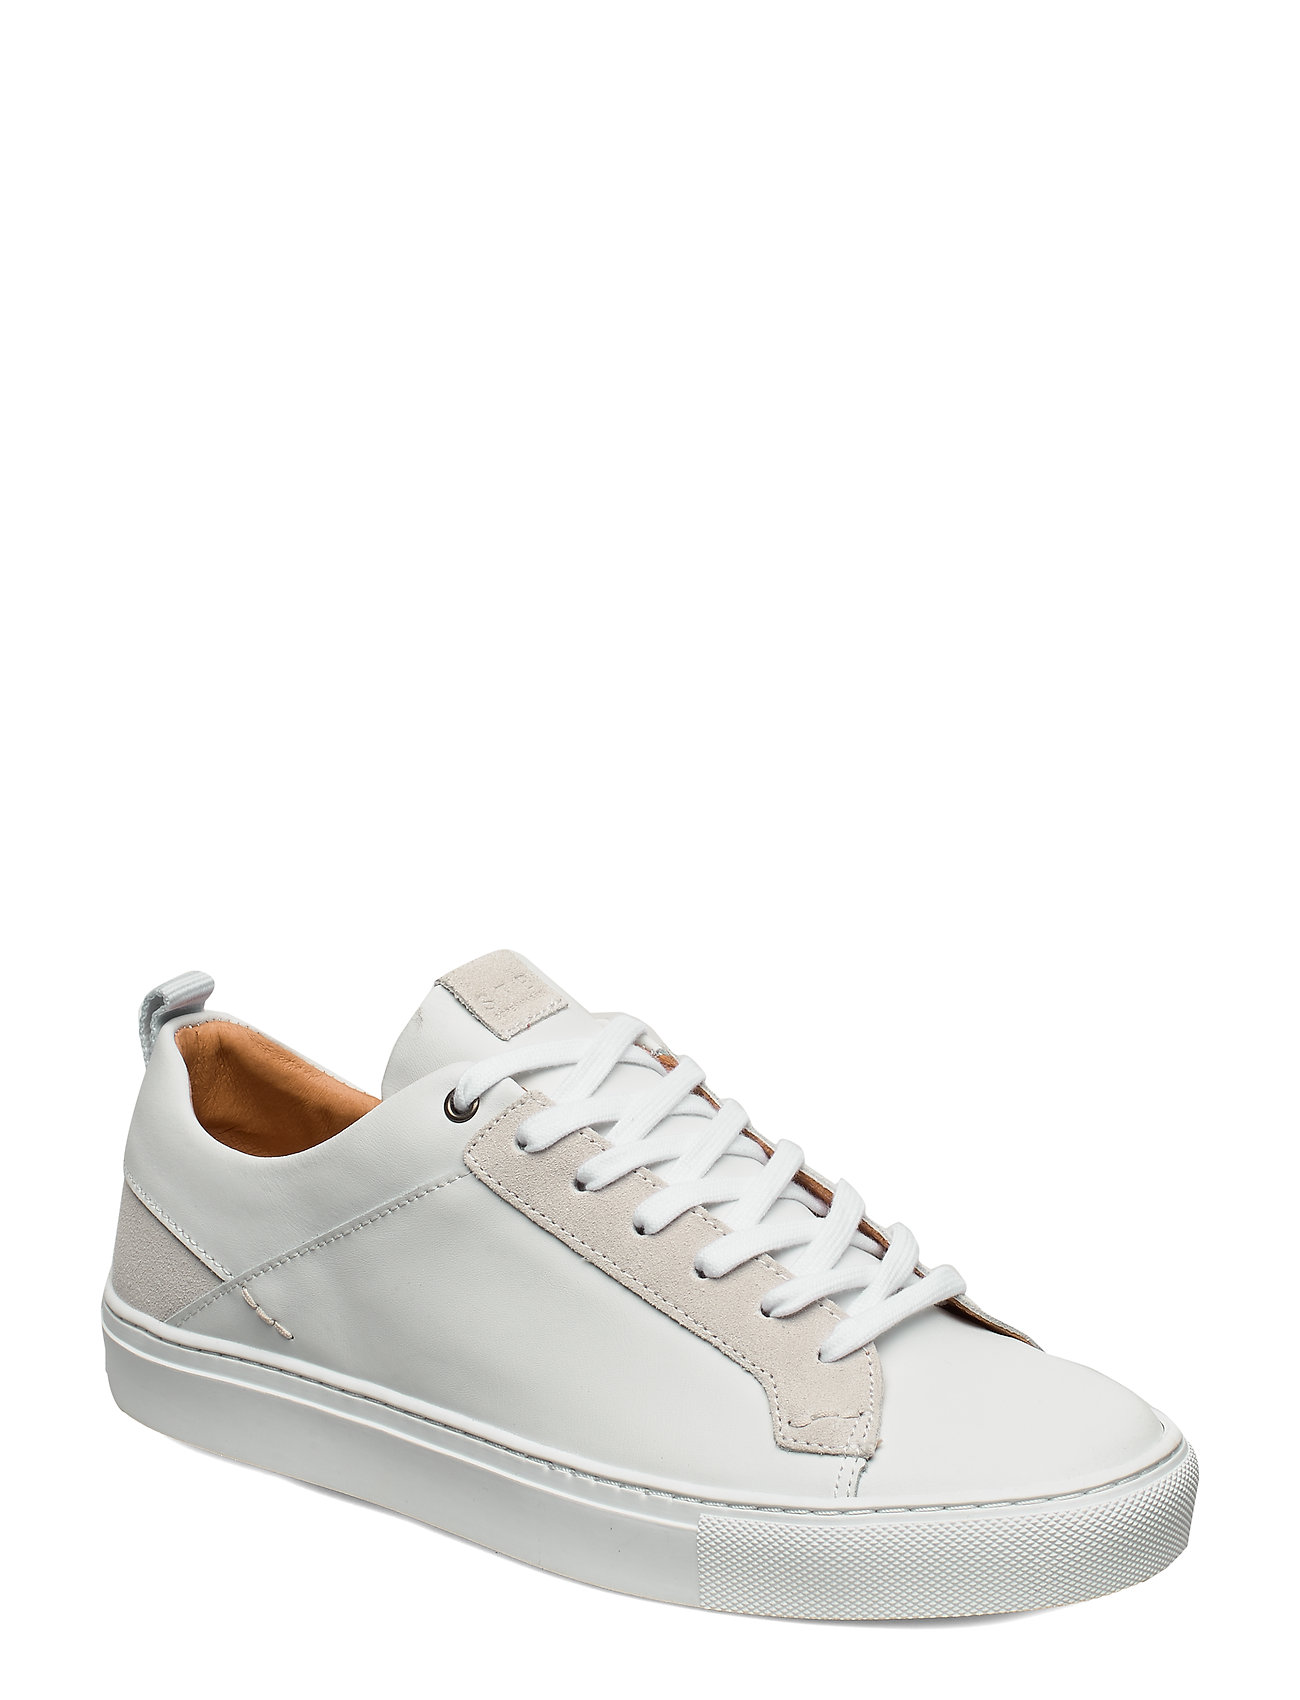 Image of Linden L Low-top Sneakers Hvid Shoe The Bear (3356552563)